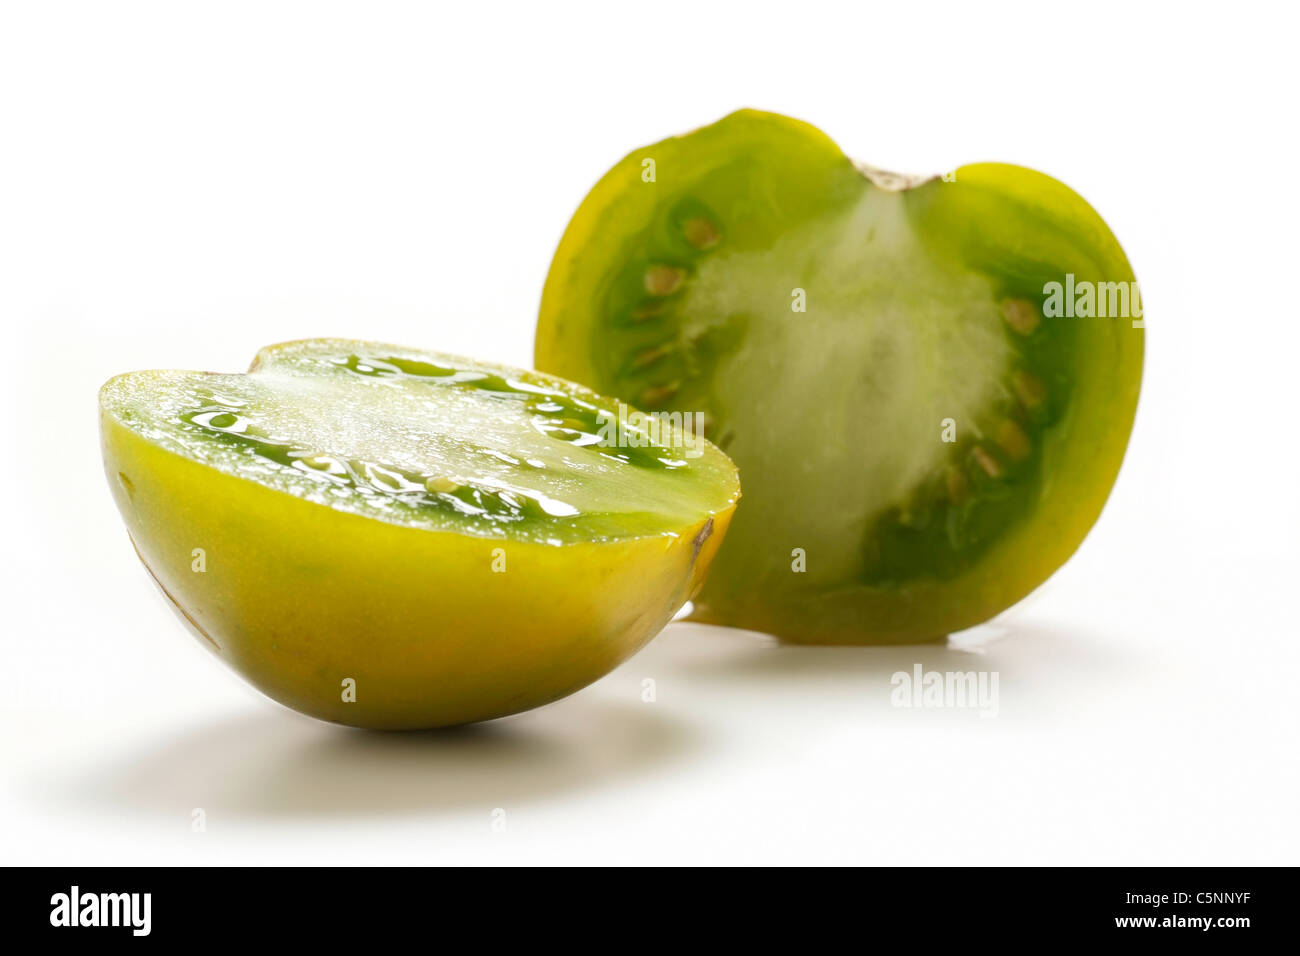 Tomato varieties:  Lime Green, two halves - Stock Image